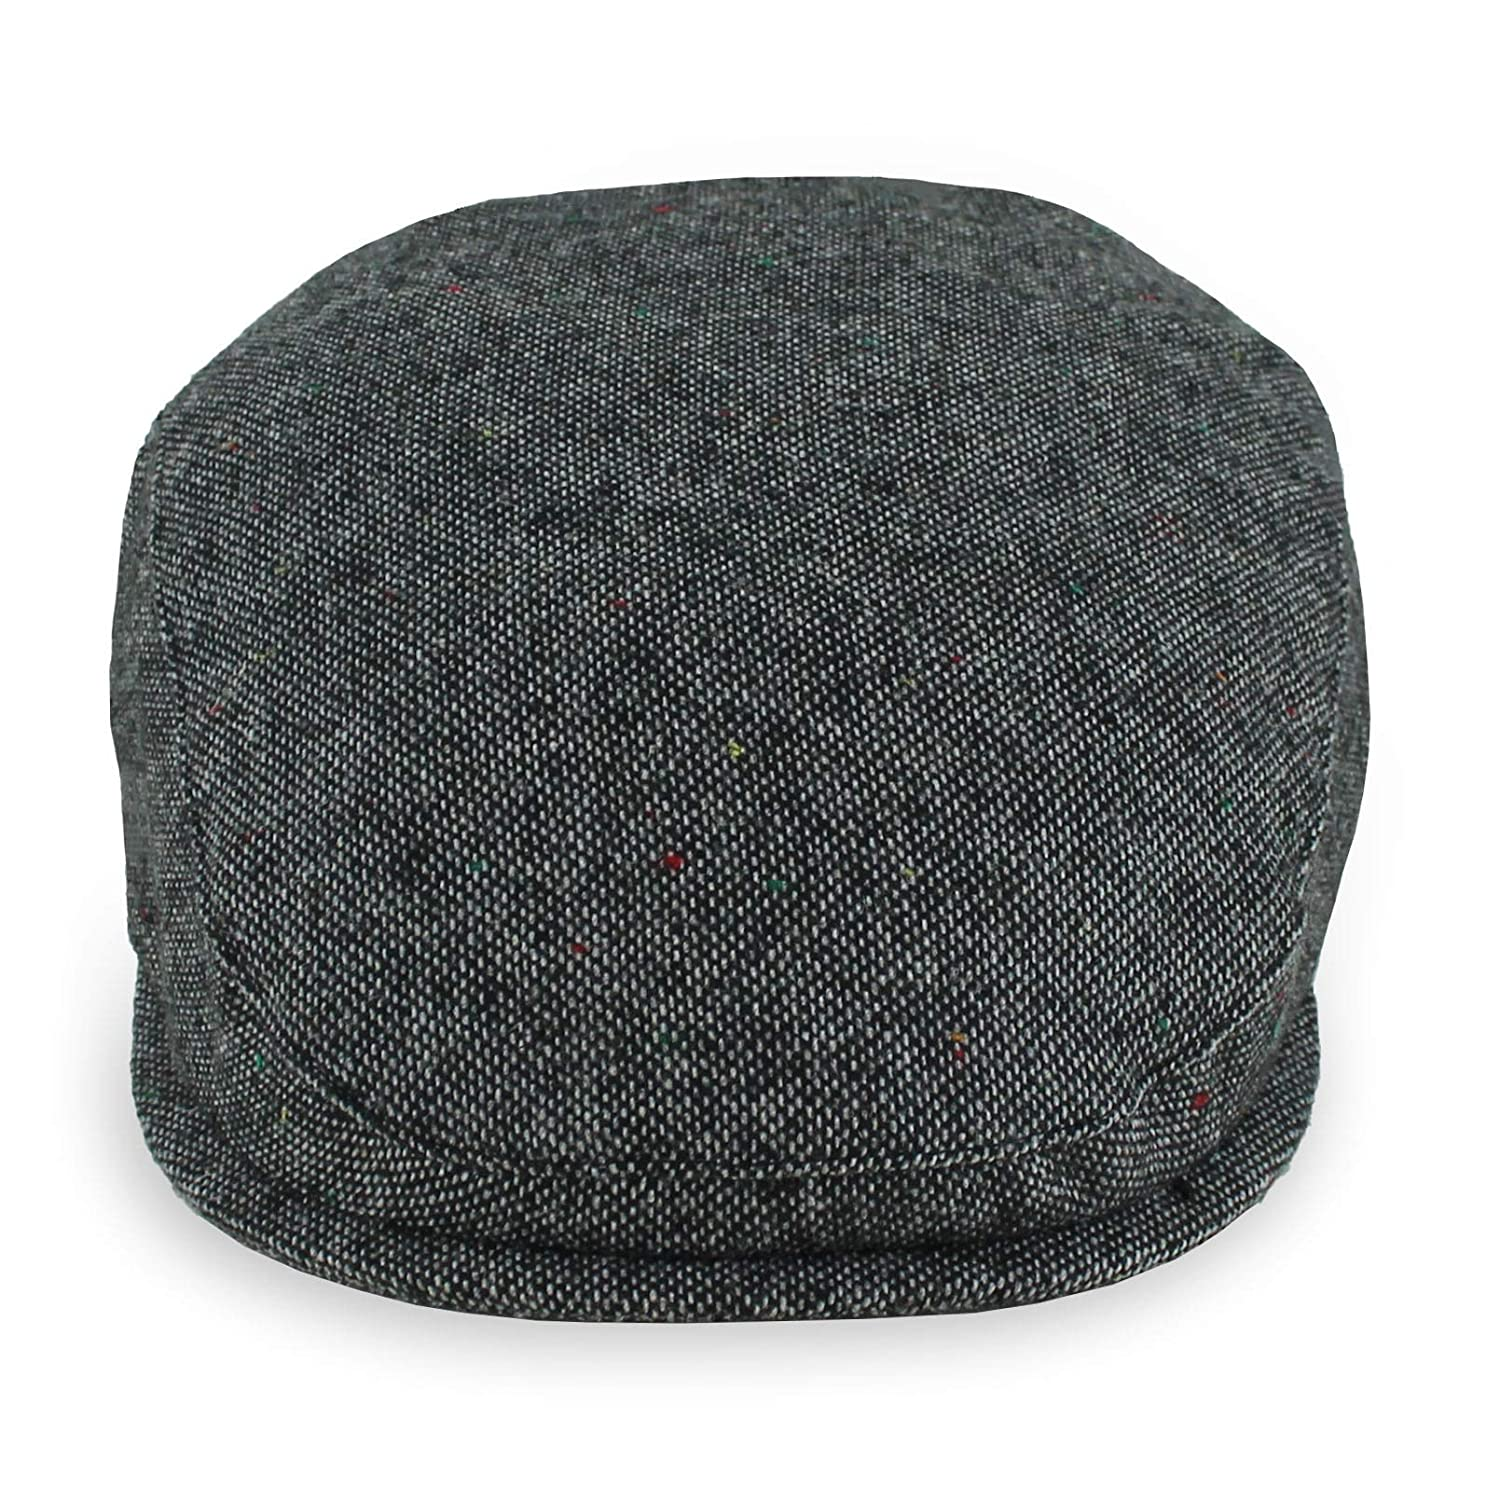 Belfry Wool Blend Tweed Flat Caps Mens Womens 5 Colors at Amazon Men s  Clothing store  e4e48fc3447